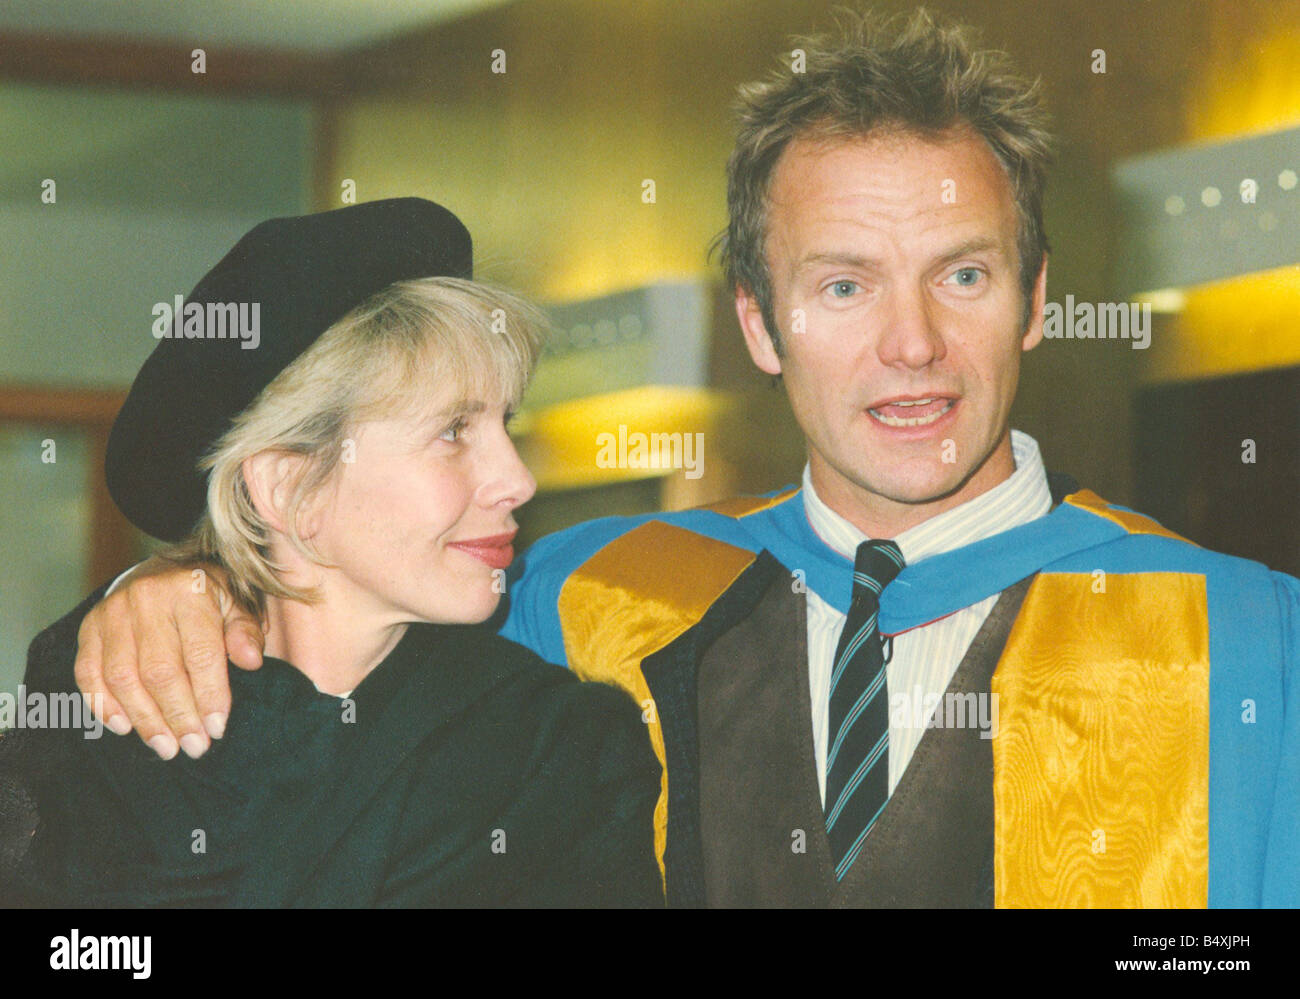 Lib Singer songwriter Sting receiving his Honorary Doctorate of Music from the University of Northumbria for his contribution to the arts and his influence on world ecology Pictured with his wife Trudie Styler 13th November 1992 Stock Photo